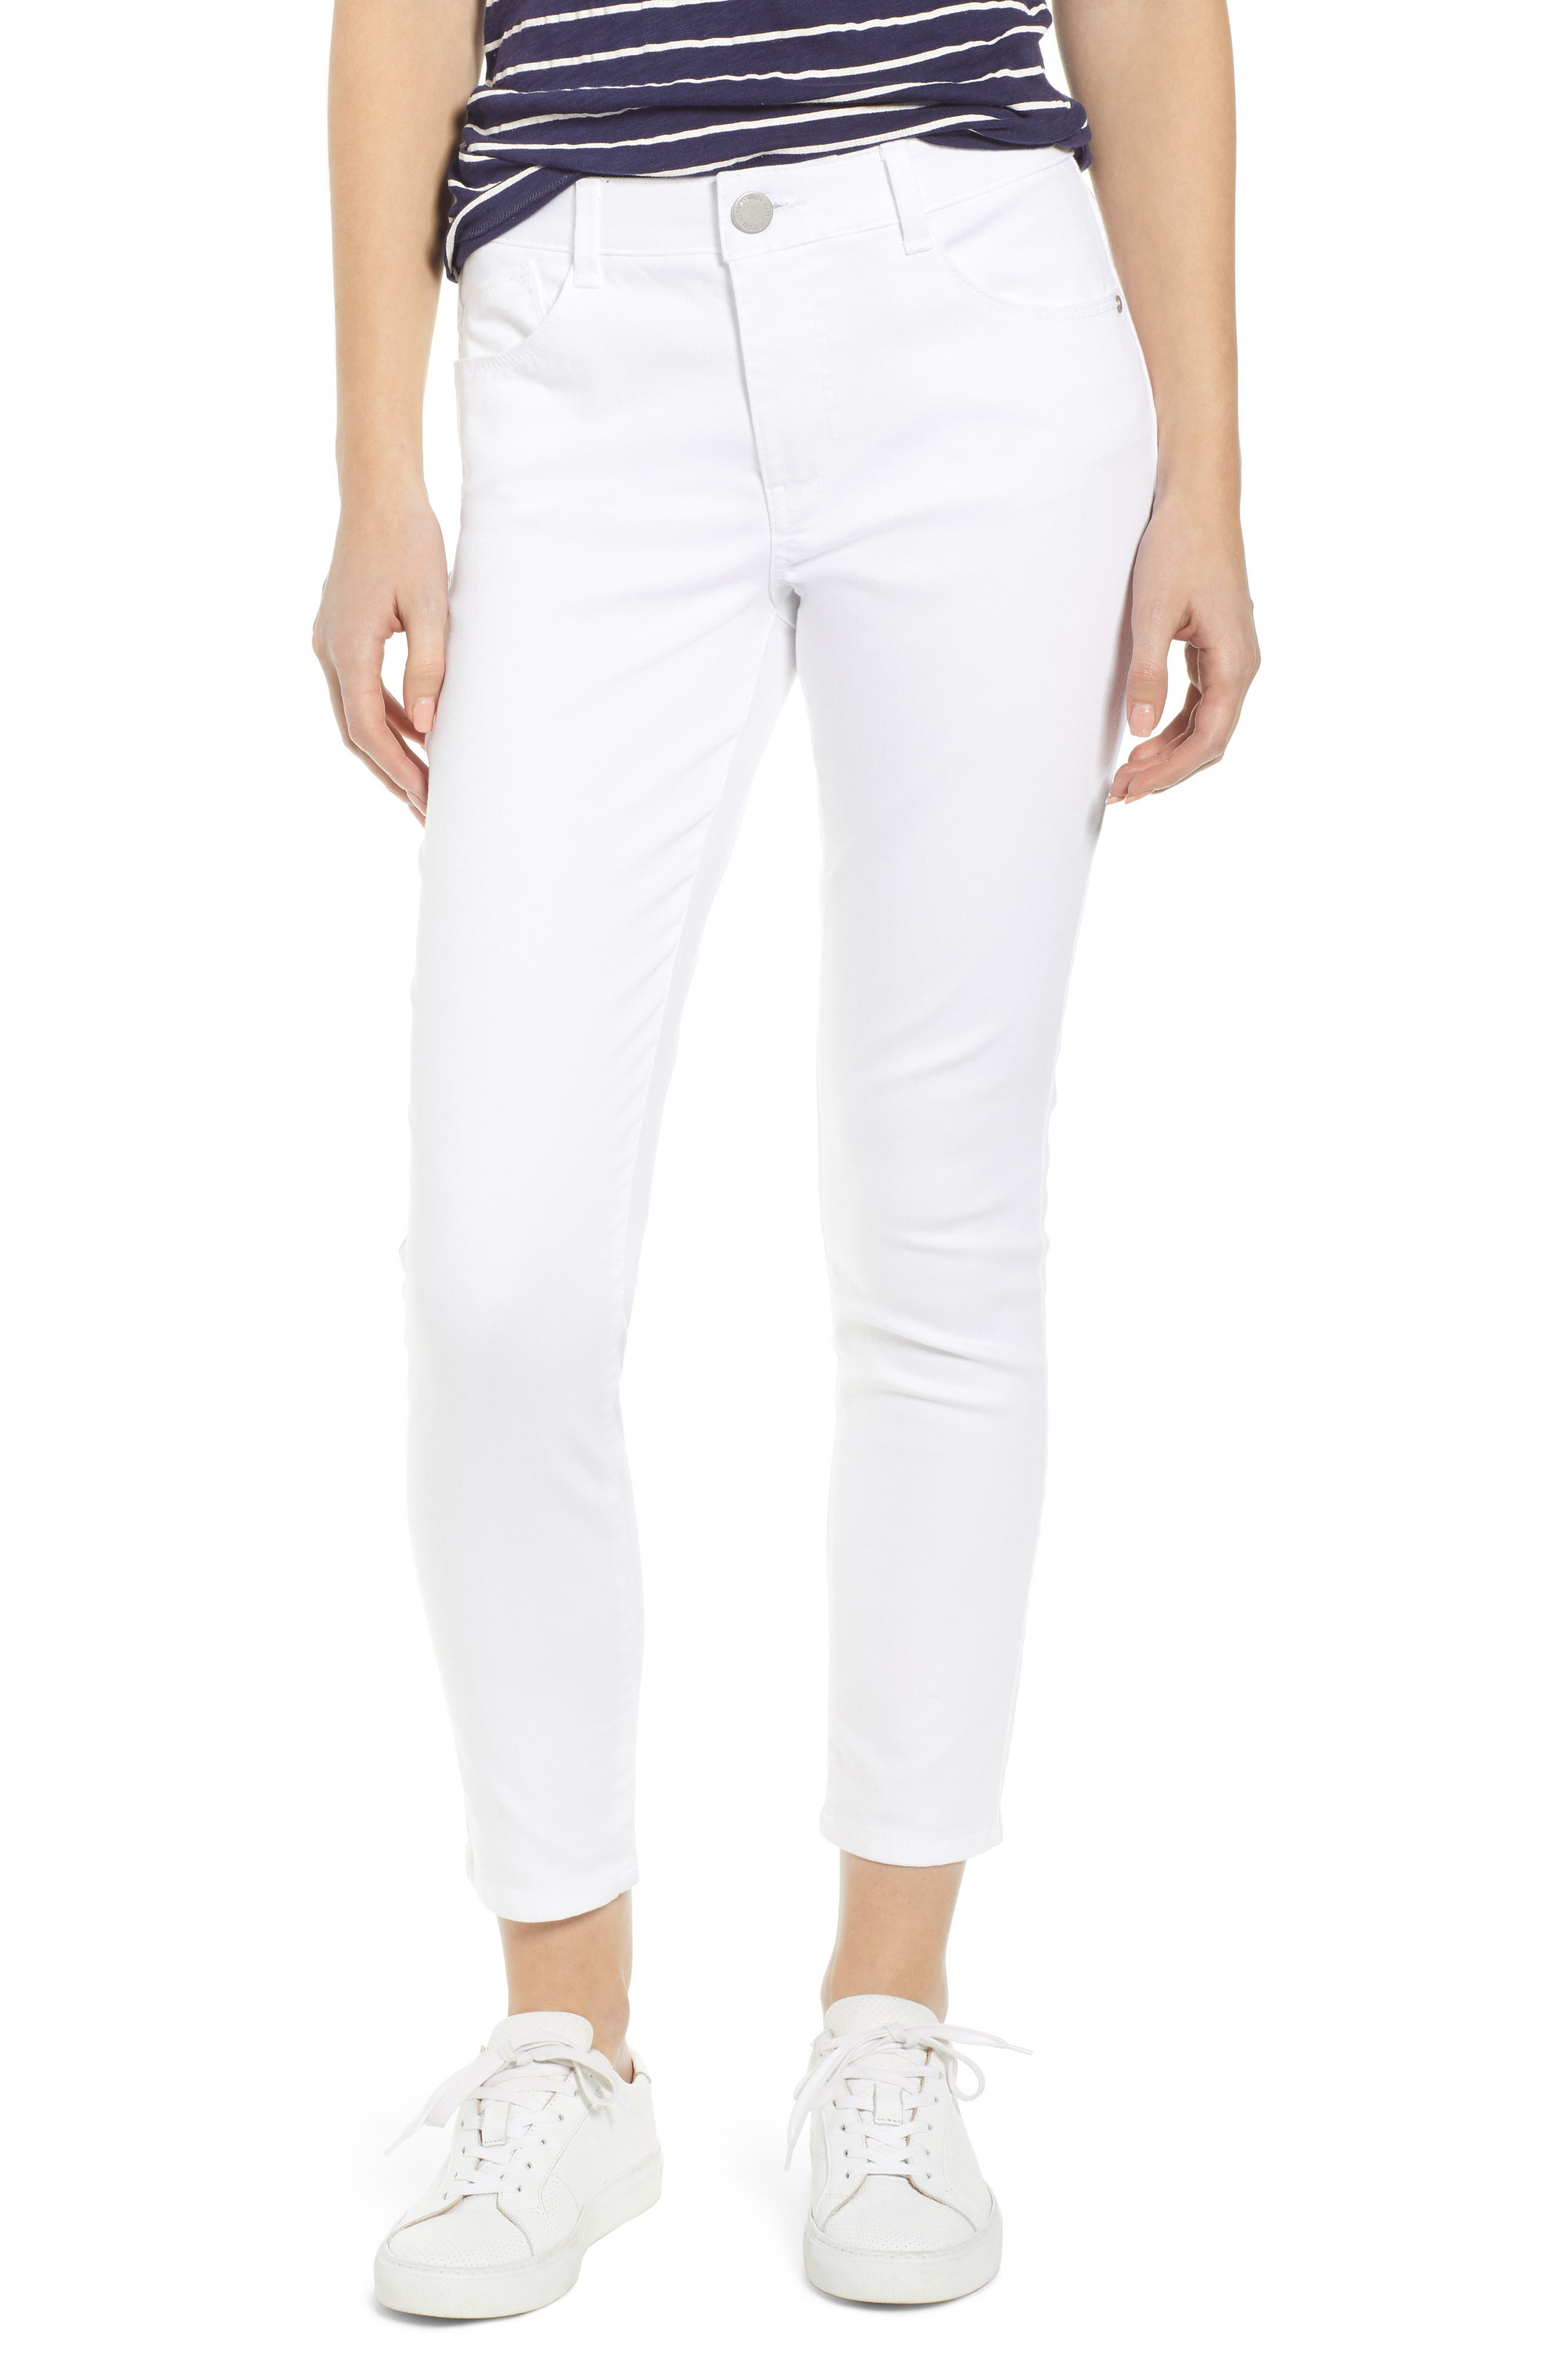 WIT & WISDOM, Ab-Solution High Waist Ankle Skinny Jeans, Main thumbnail 1, color, OPTIC WHITE